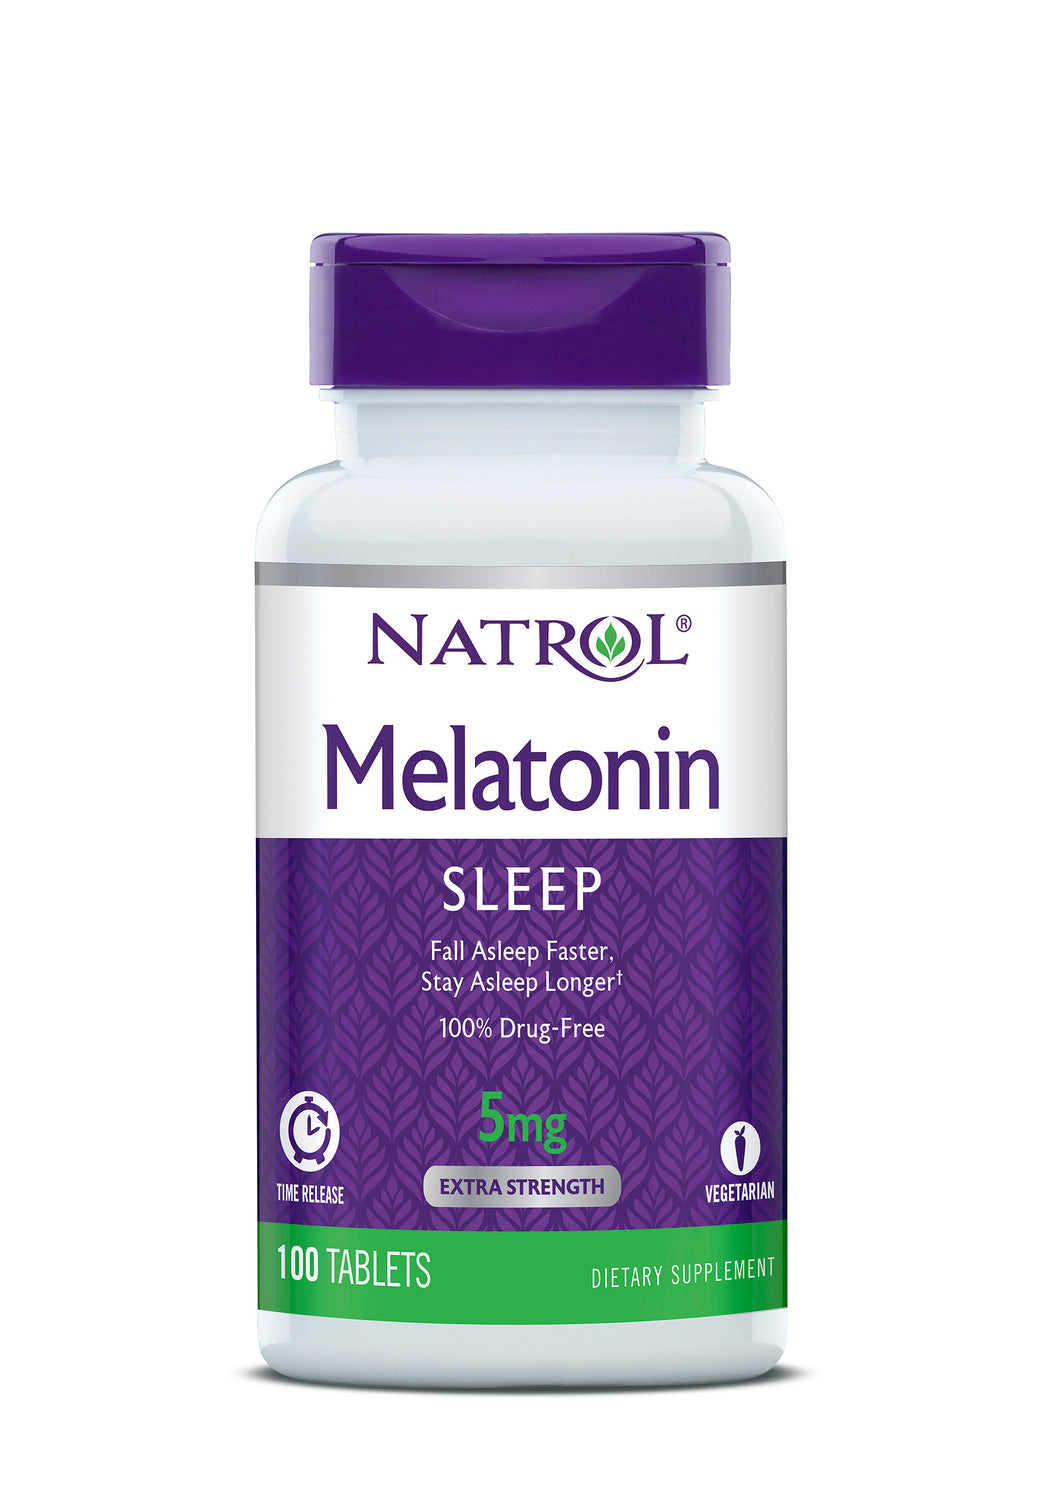 Natrol Dietary Supplement Melatonin TR Time Release 5 mg - 100 CT